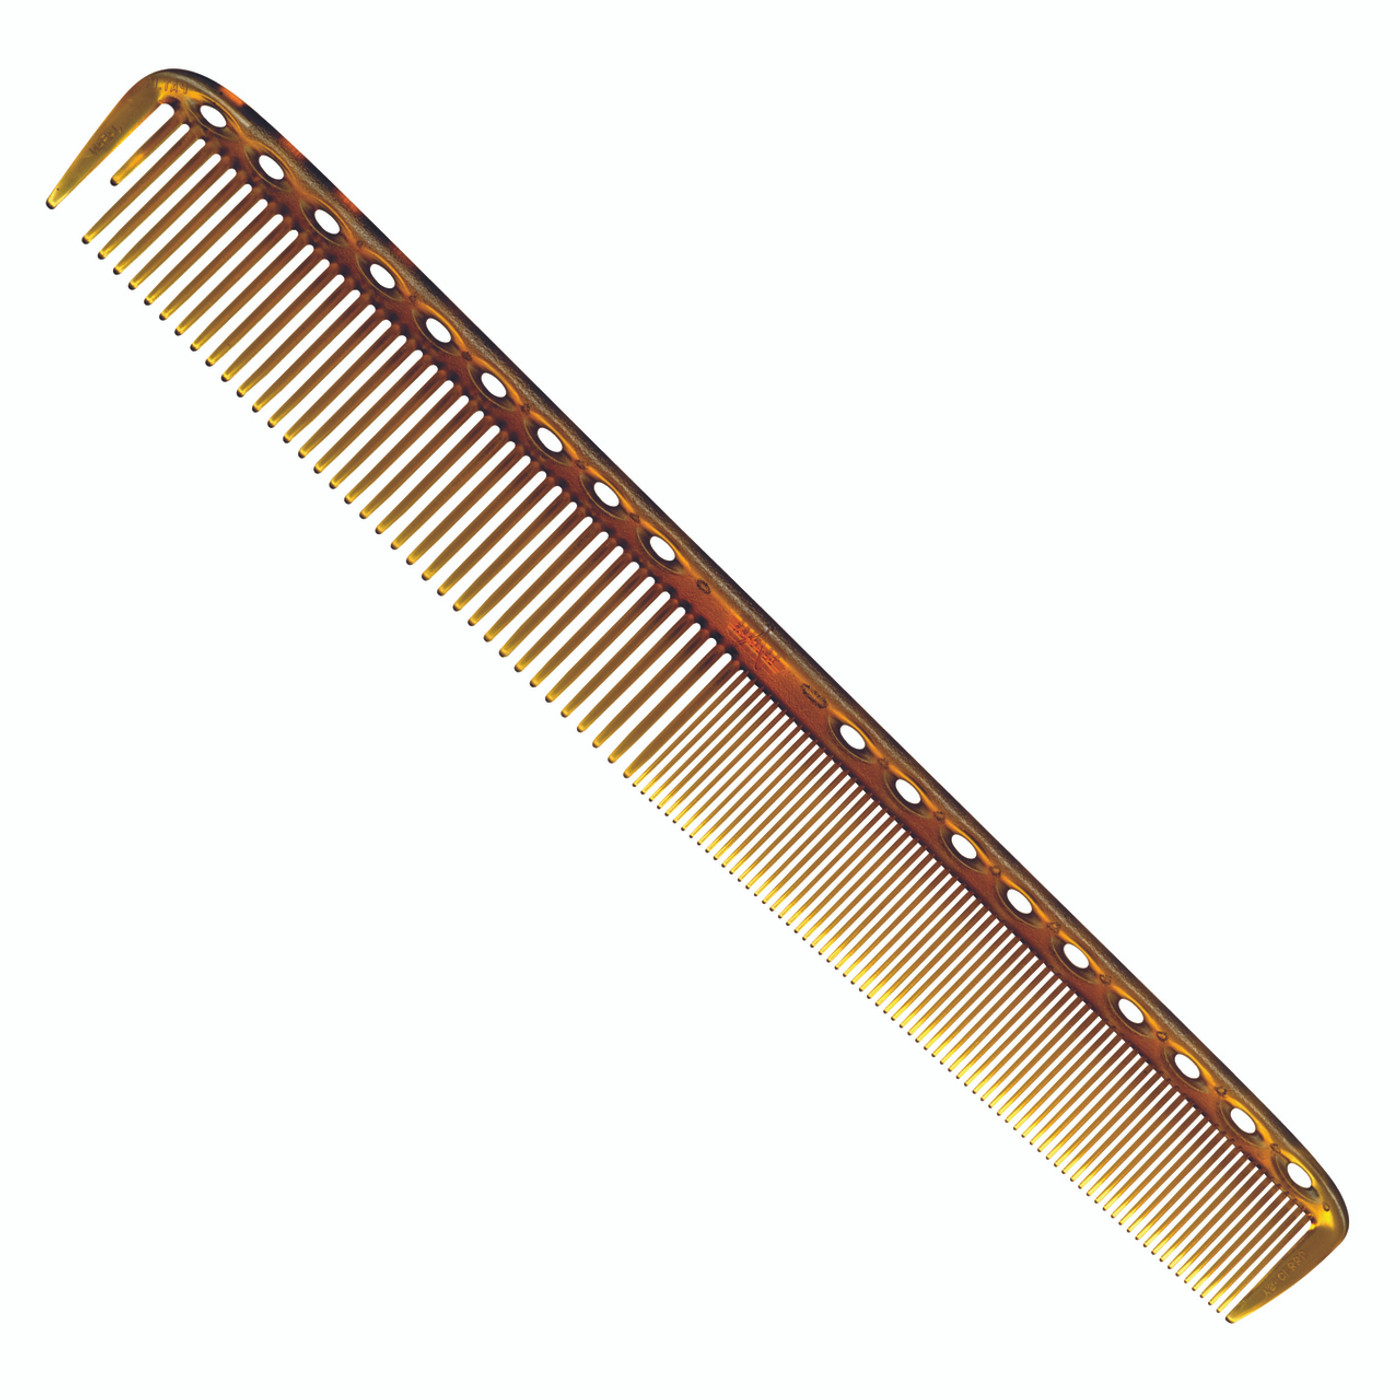 YS Park 335 Long Fine Tooth Cutting Comb - Camel